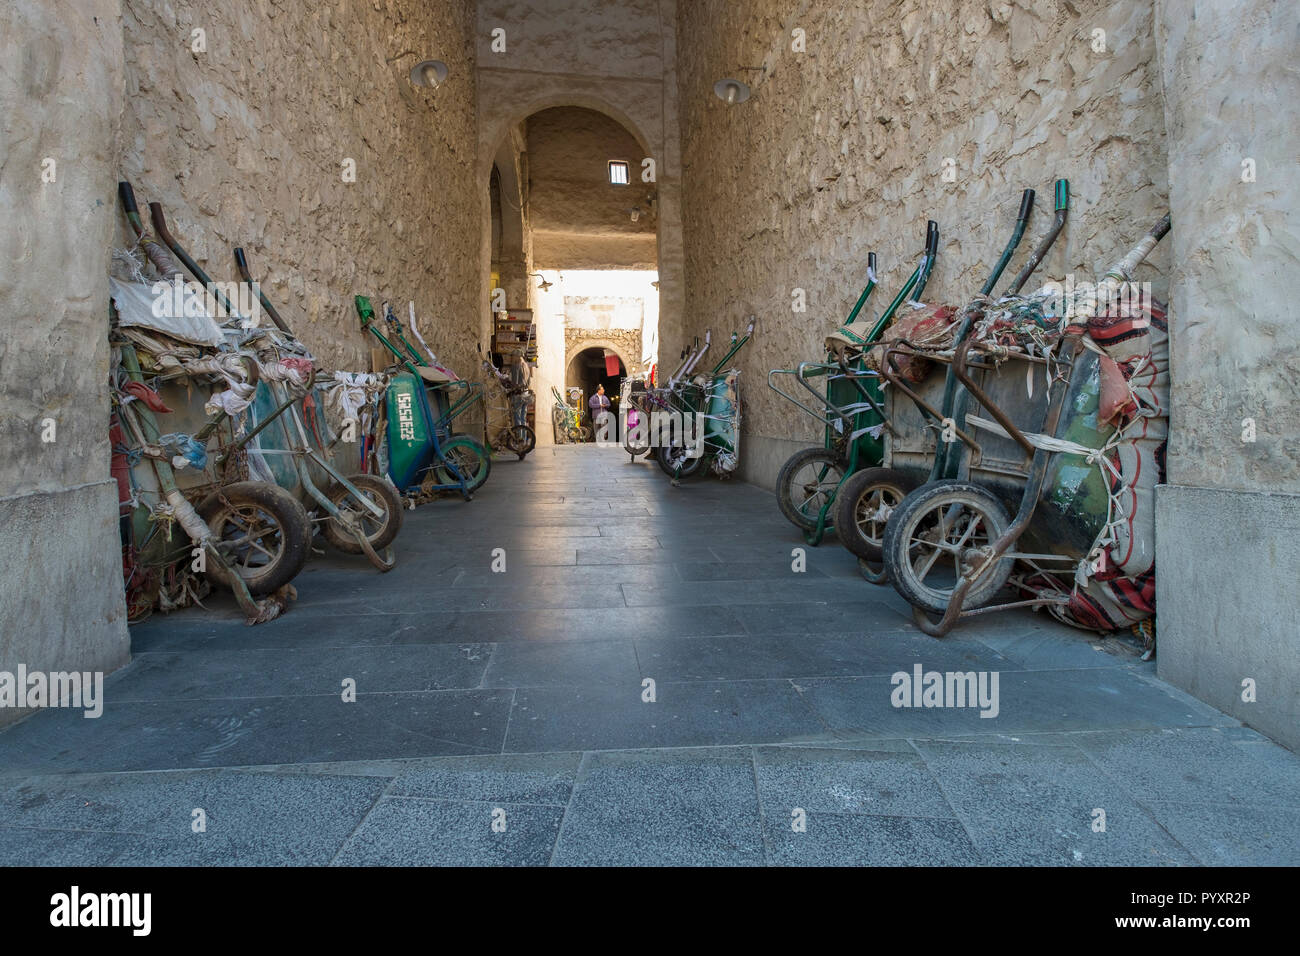 Wheelbarrows lined up in the Souk in Doha, Qatar - Stock Image